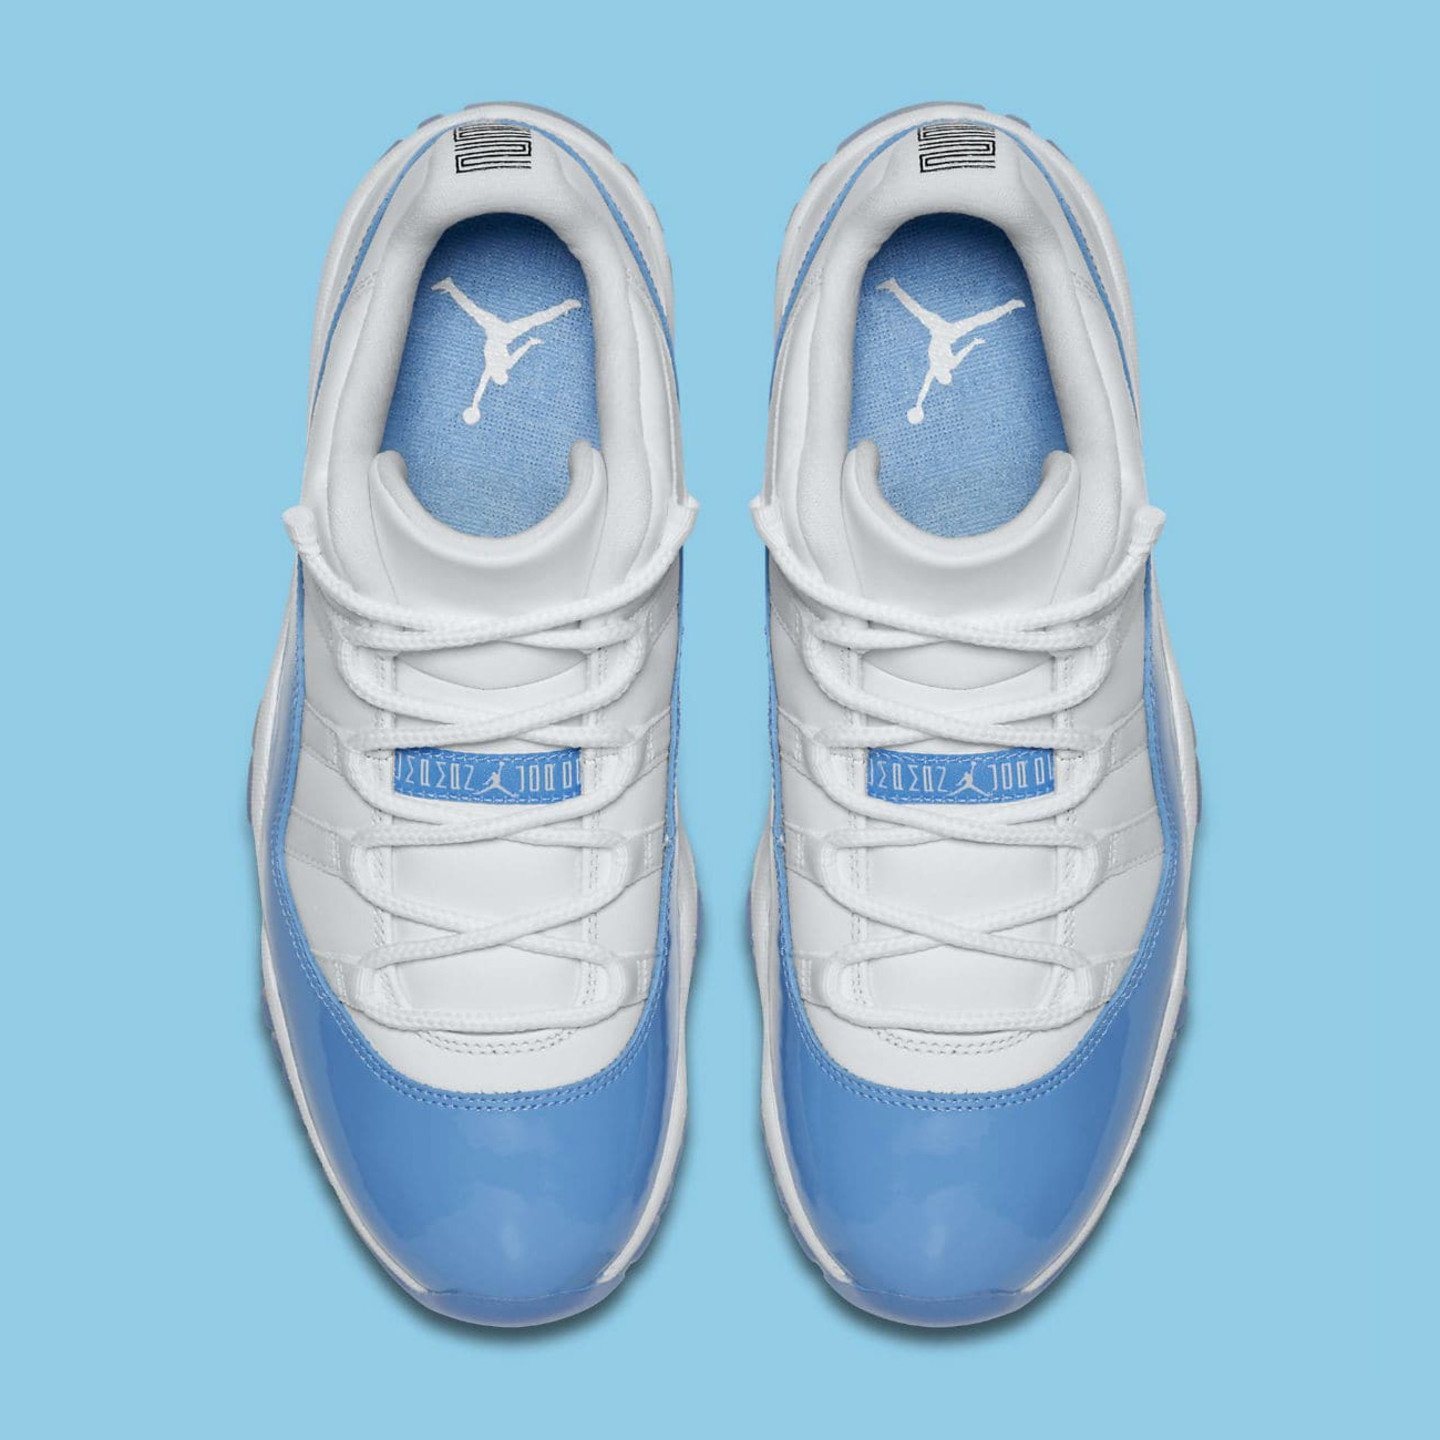 Jordan Air Jordan 11 Retro Low 'UNC' White / University Blue 528895-106-42